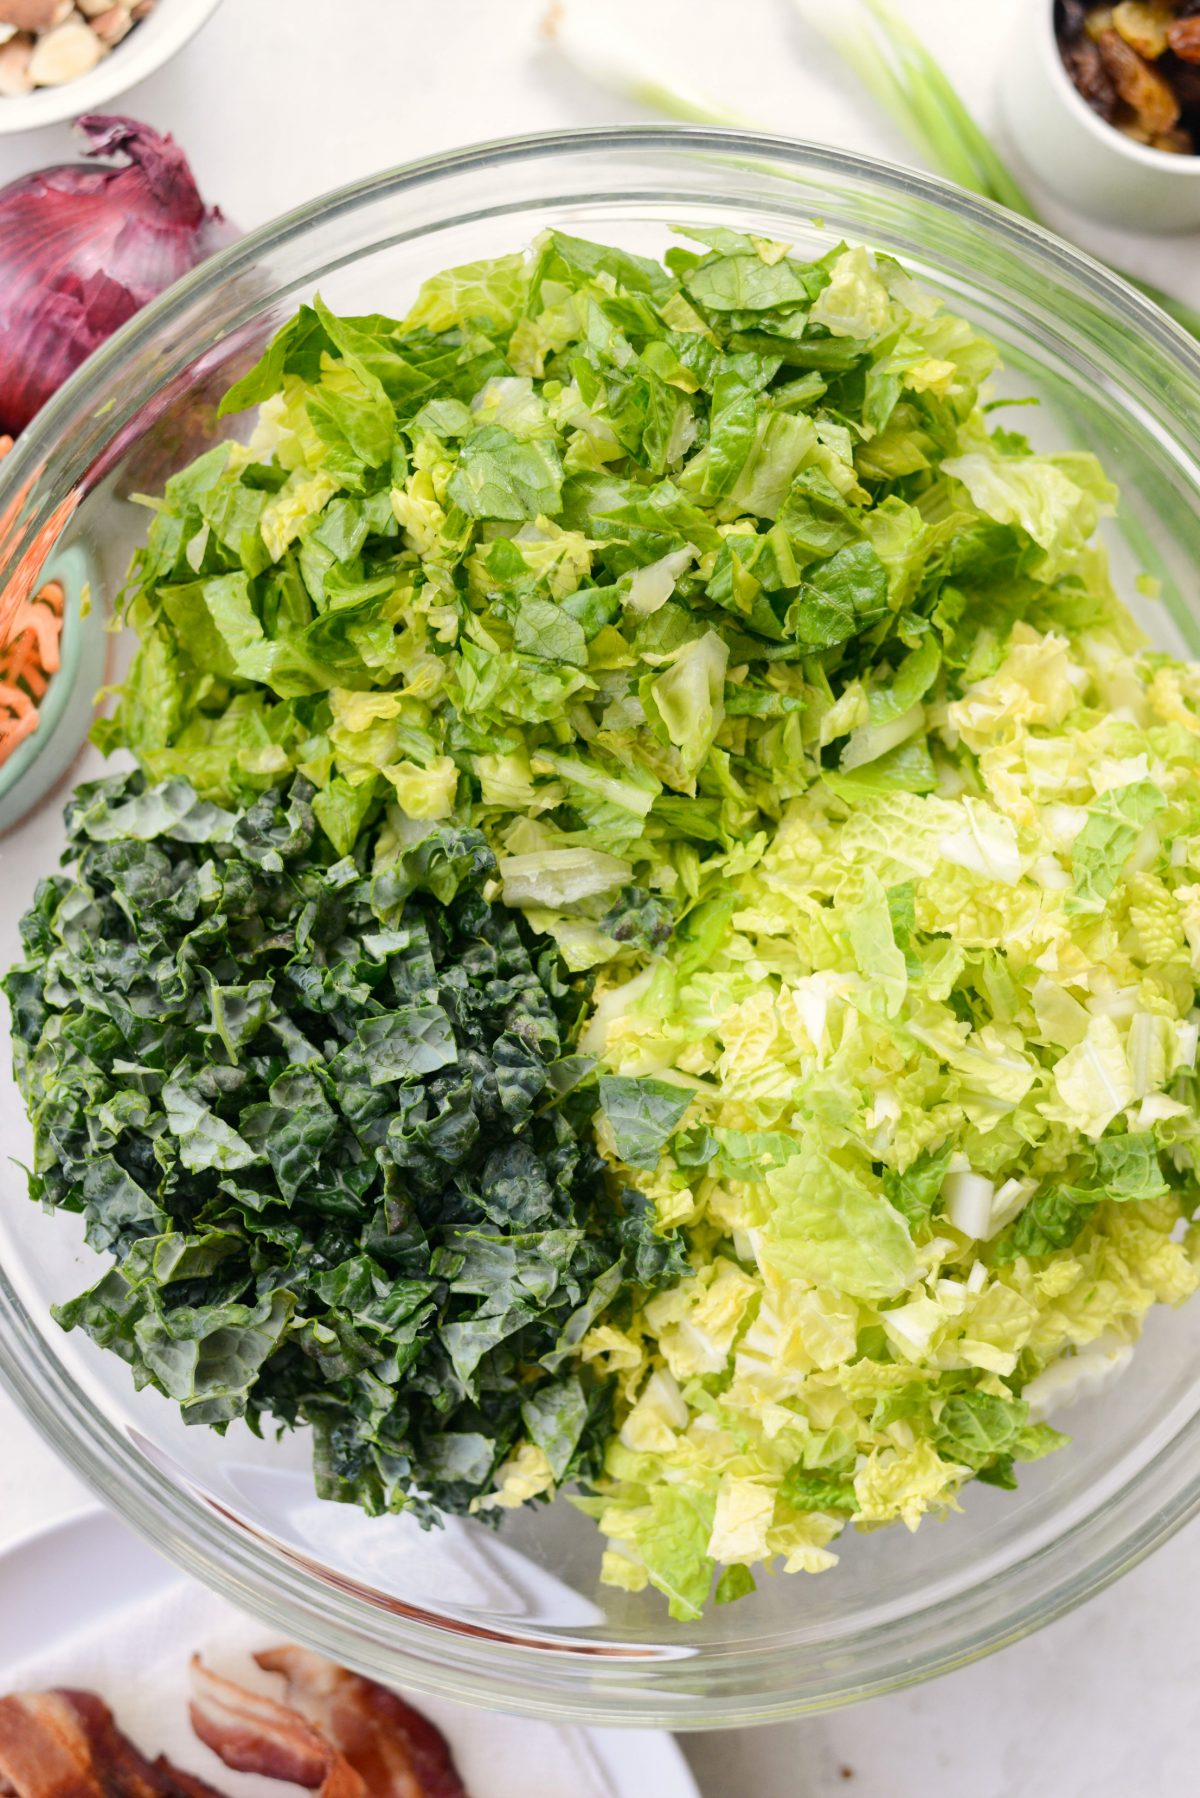 glass bowl of chopped lettuce and kale.